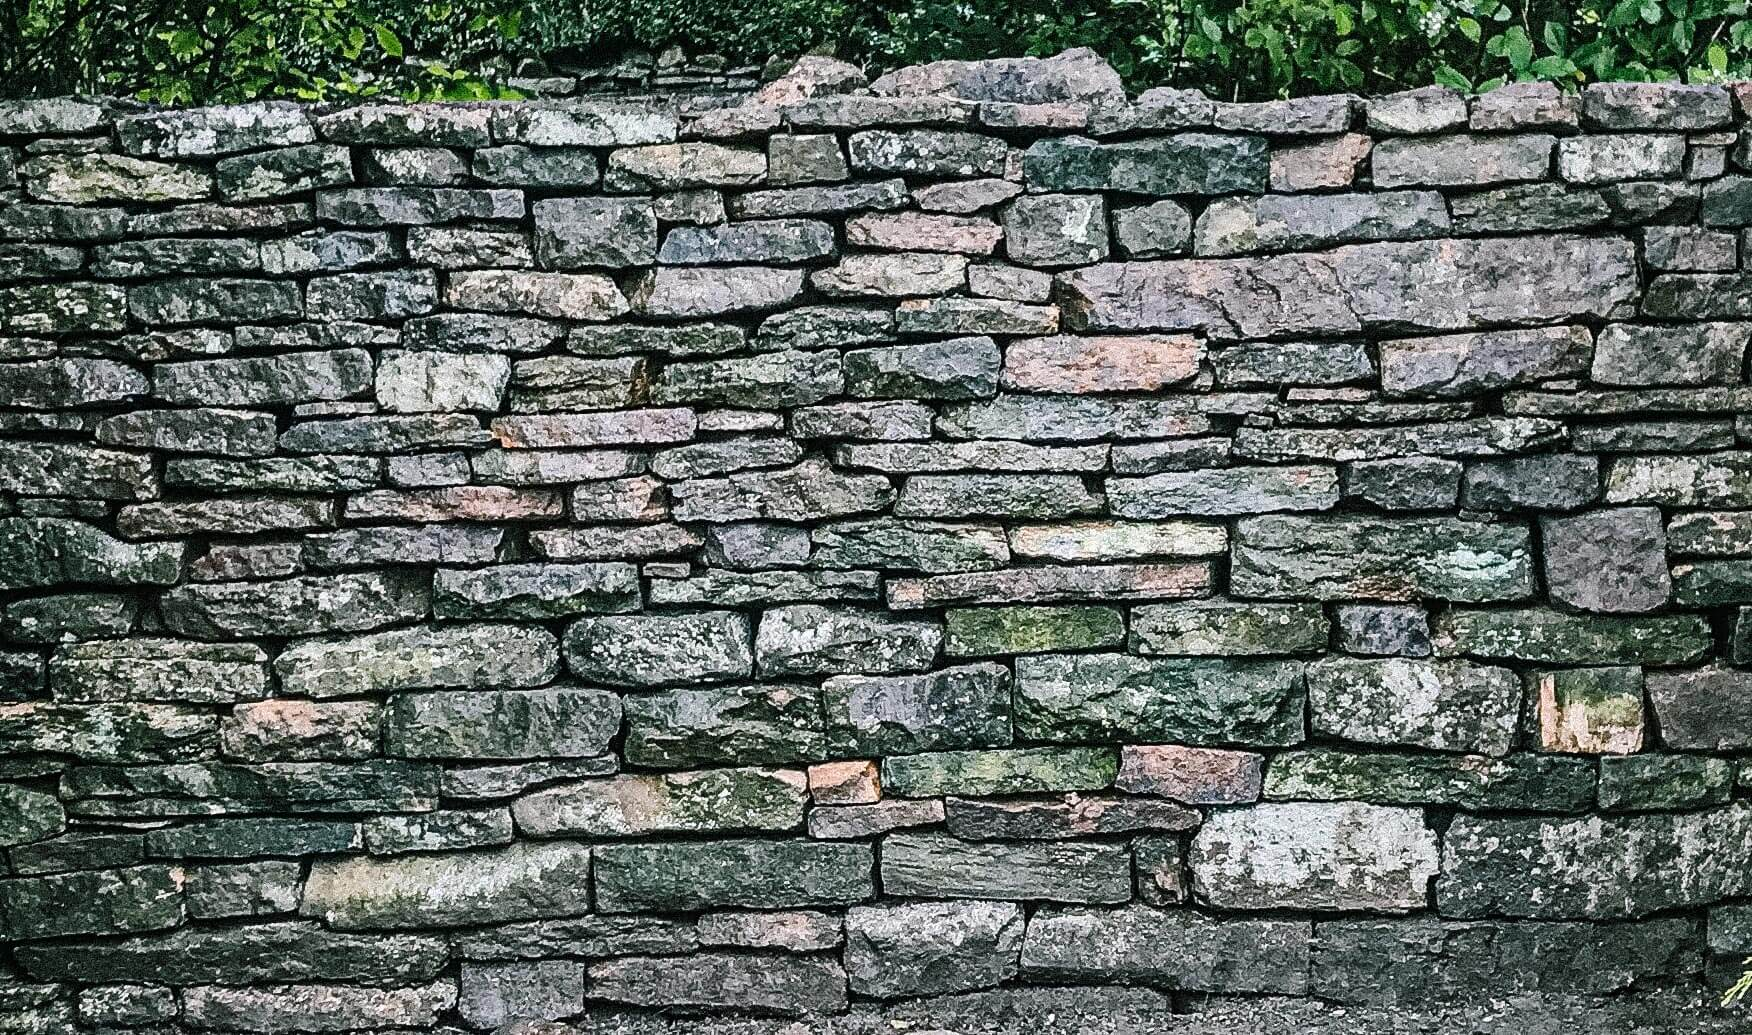 A close up photo of a grit stone dry stone wall in Sheffield